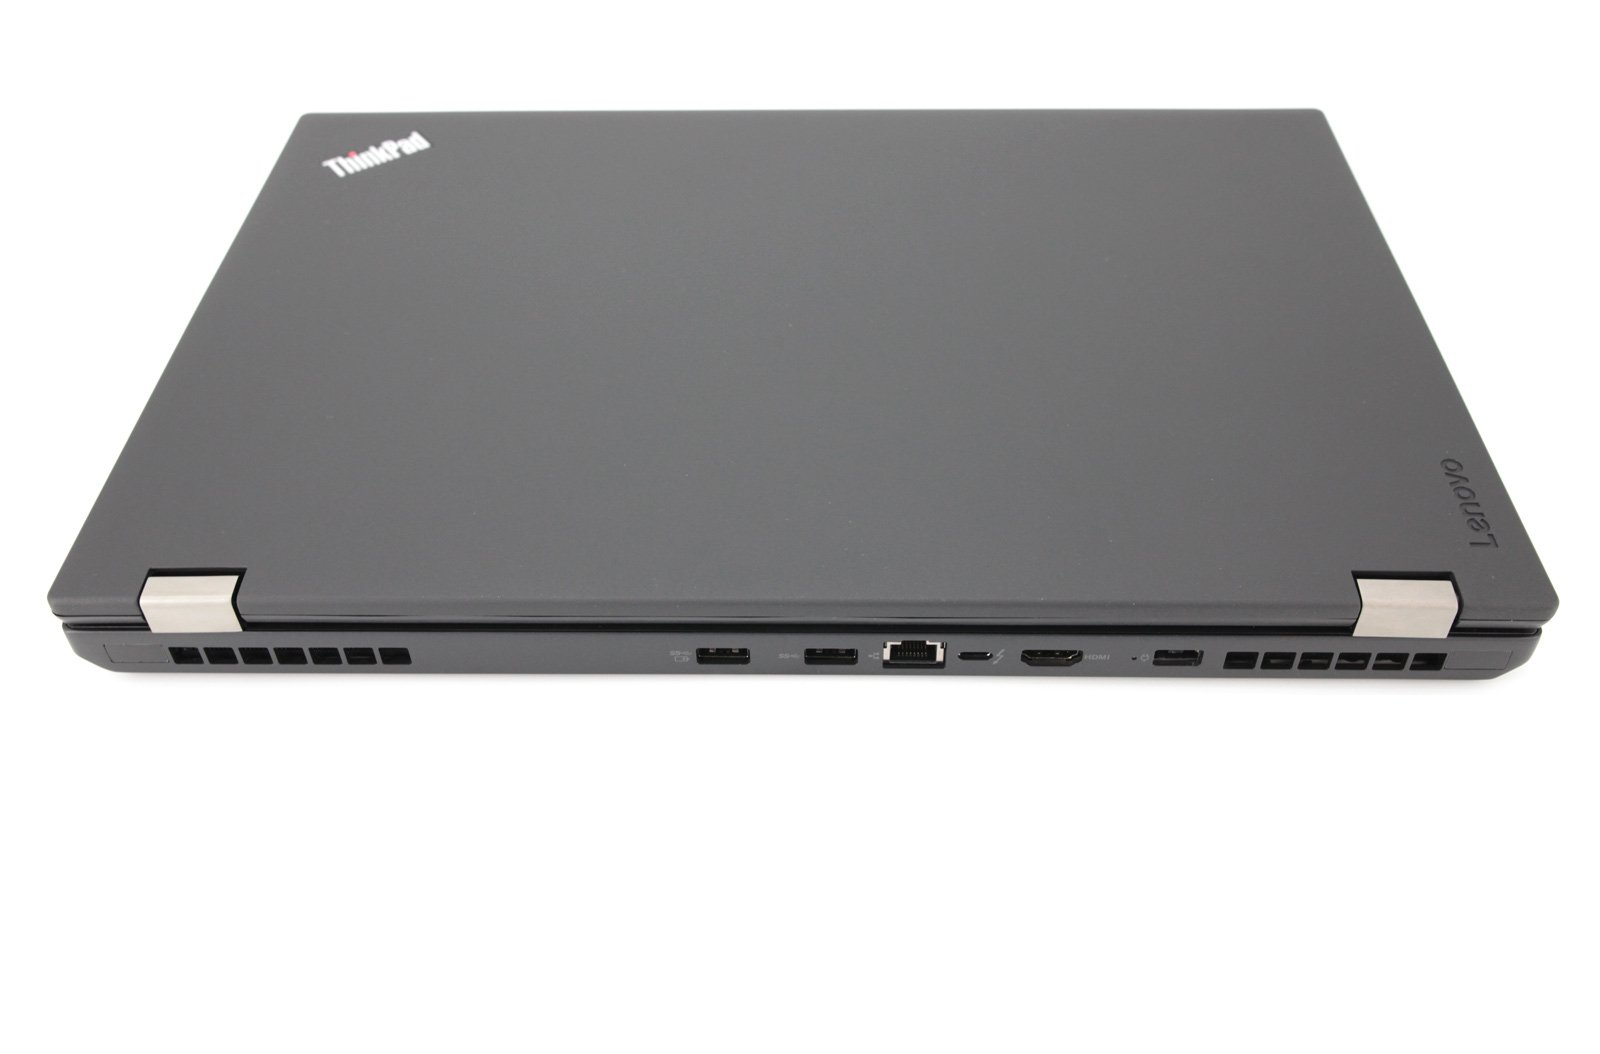 Lenovo ThinkPad P51 4K Laptop: Core i7-7700H 32GB RAM 512GB SSD, Quadro Warranty - CruiseTech